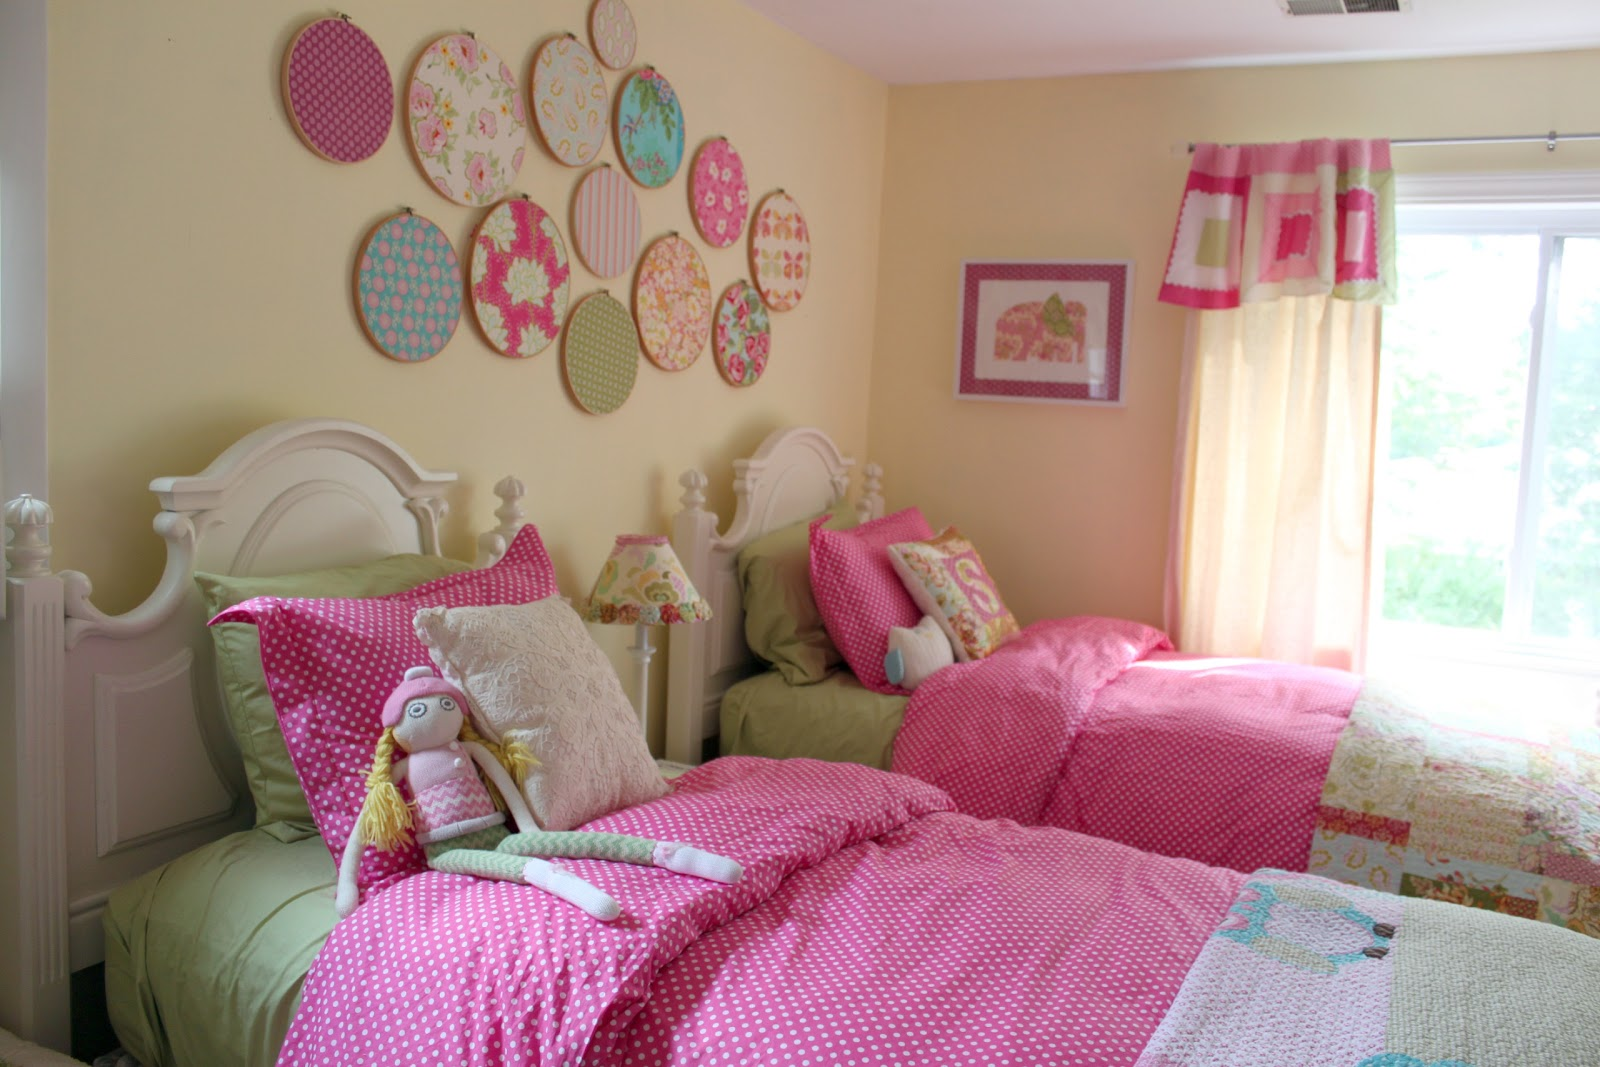 Decorating girls shared toddler bedroom the cottage mama - Photos of girls bedroom ...